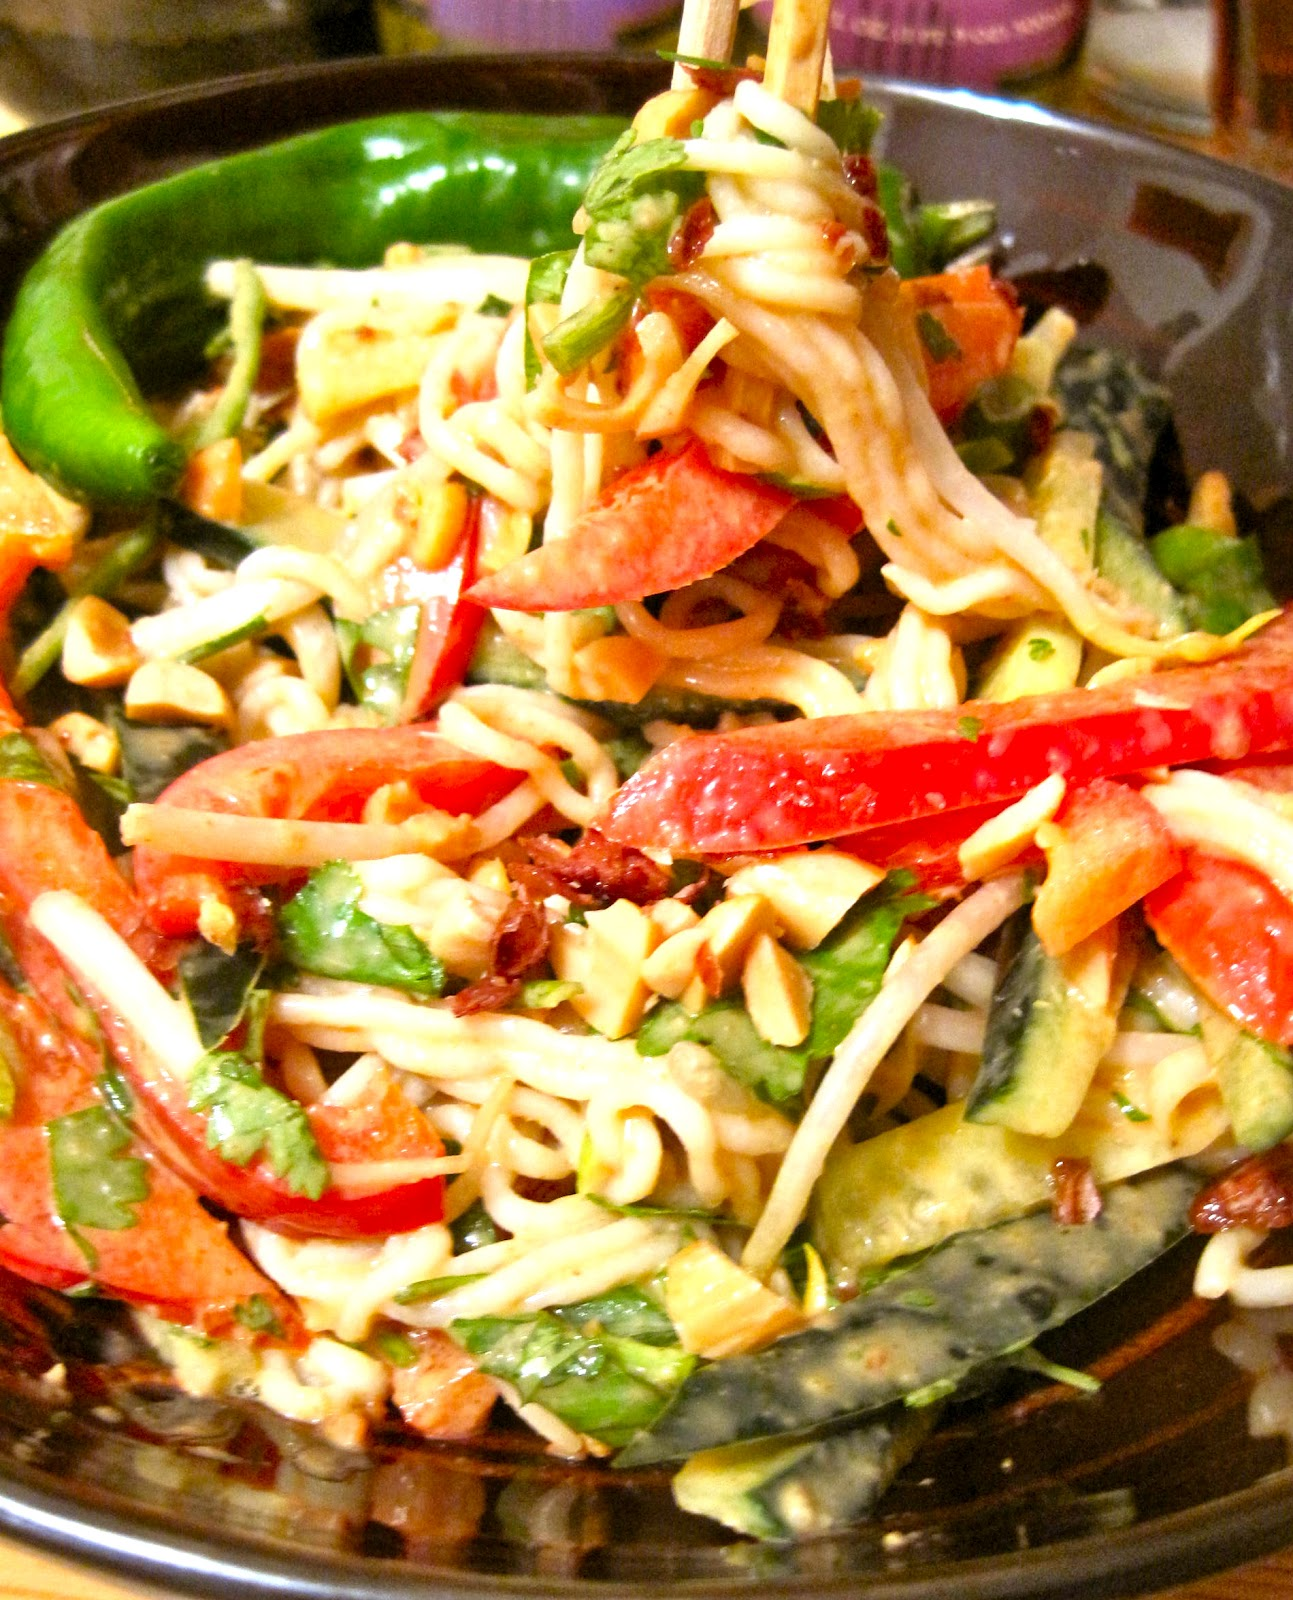 Kvell in the Kitchen: Spicy Peanut Noodles